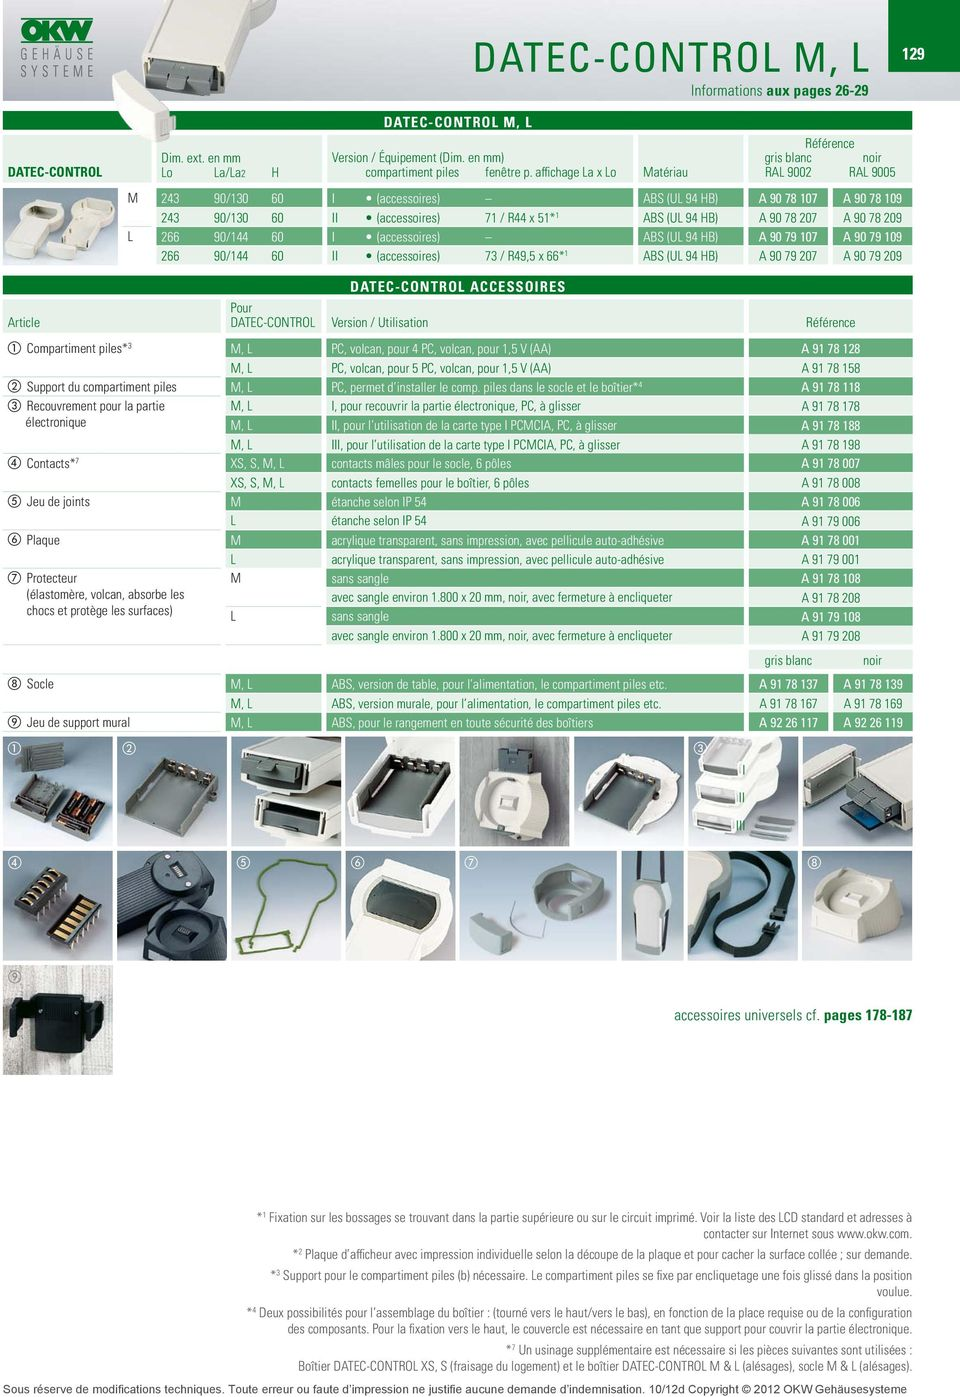 207 A 90 78 209 L 266 90/144 60 I (accessoires) ABS (UL 94 HB) A 90 79 107 A 90 79 109 266 90/144 60 II (accessoires) 73 / R49,5 x 66* 1 ABS (UL 94 HB) A 90 79 207 A 90 79 209 Article 1 b